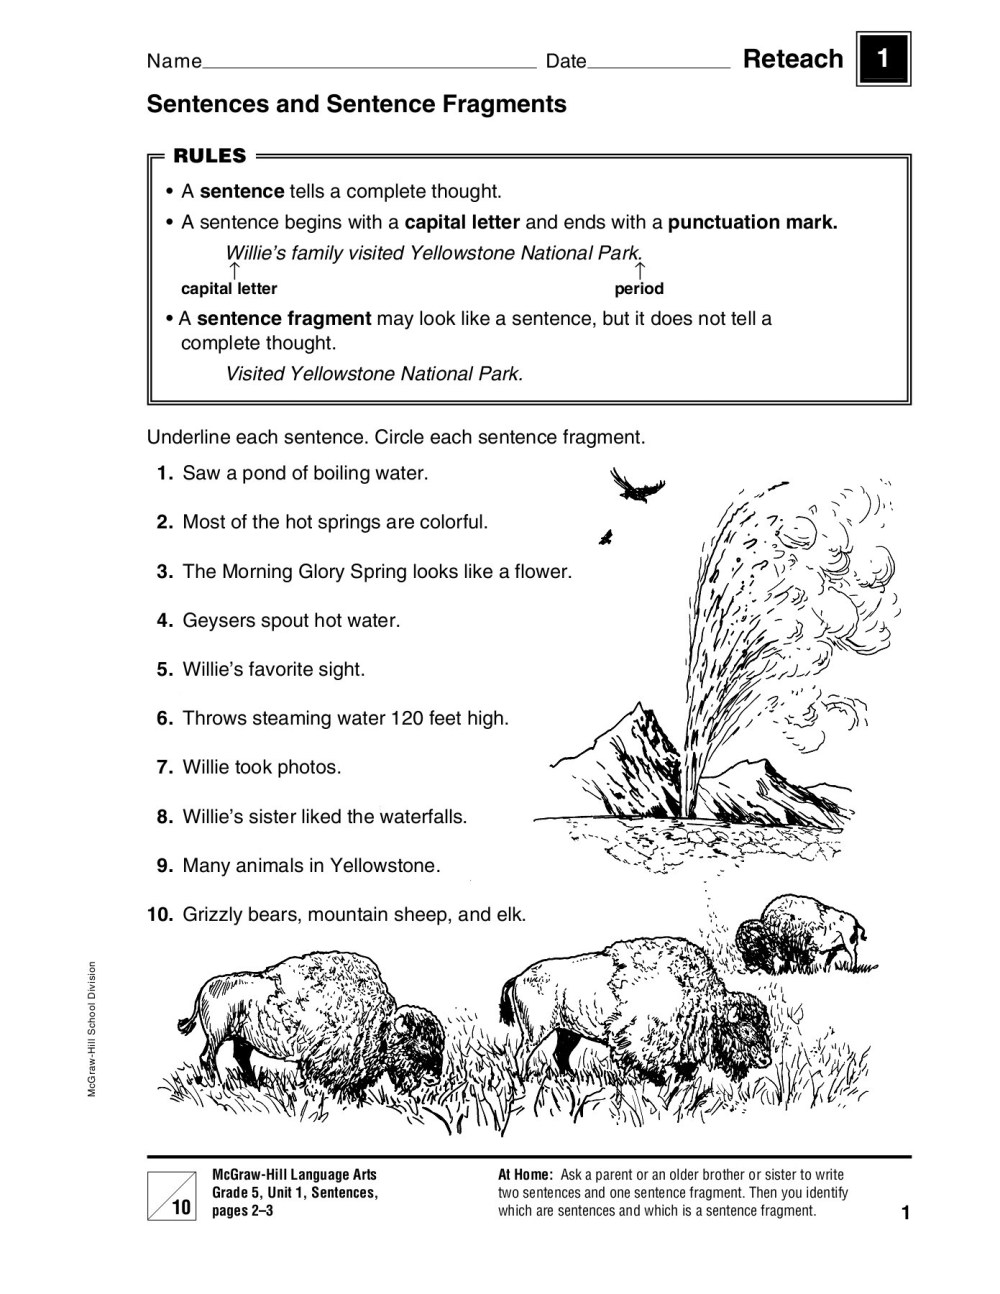 medium resolution of Sentences and Sentence Fragments - Macmillan/McGraw-Hill Pages 1 - 50 -  Flip PDF Download   FlipHTML5